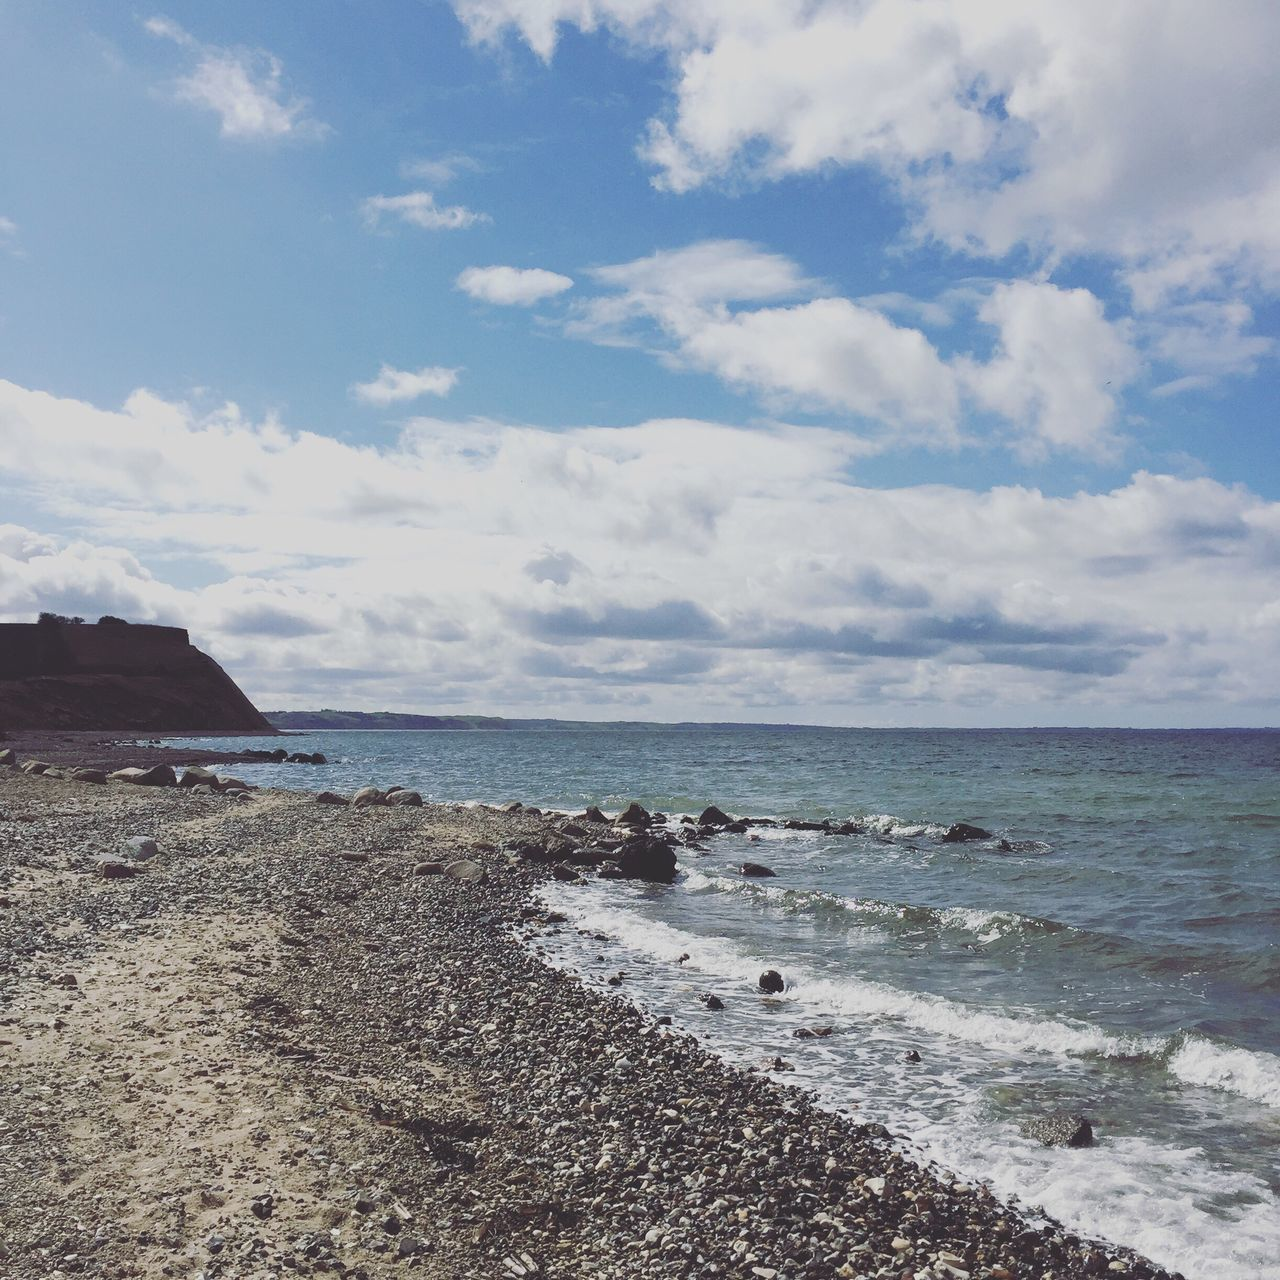 sea, sky, water, beach, horizon over water, nature, scenics, beauty in nature, tranquility, outdoors, cloud - sky, no people, day, wave